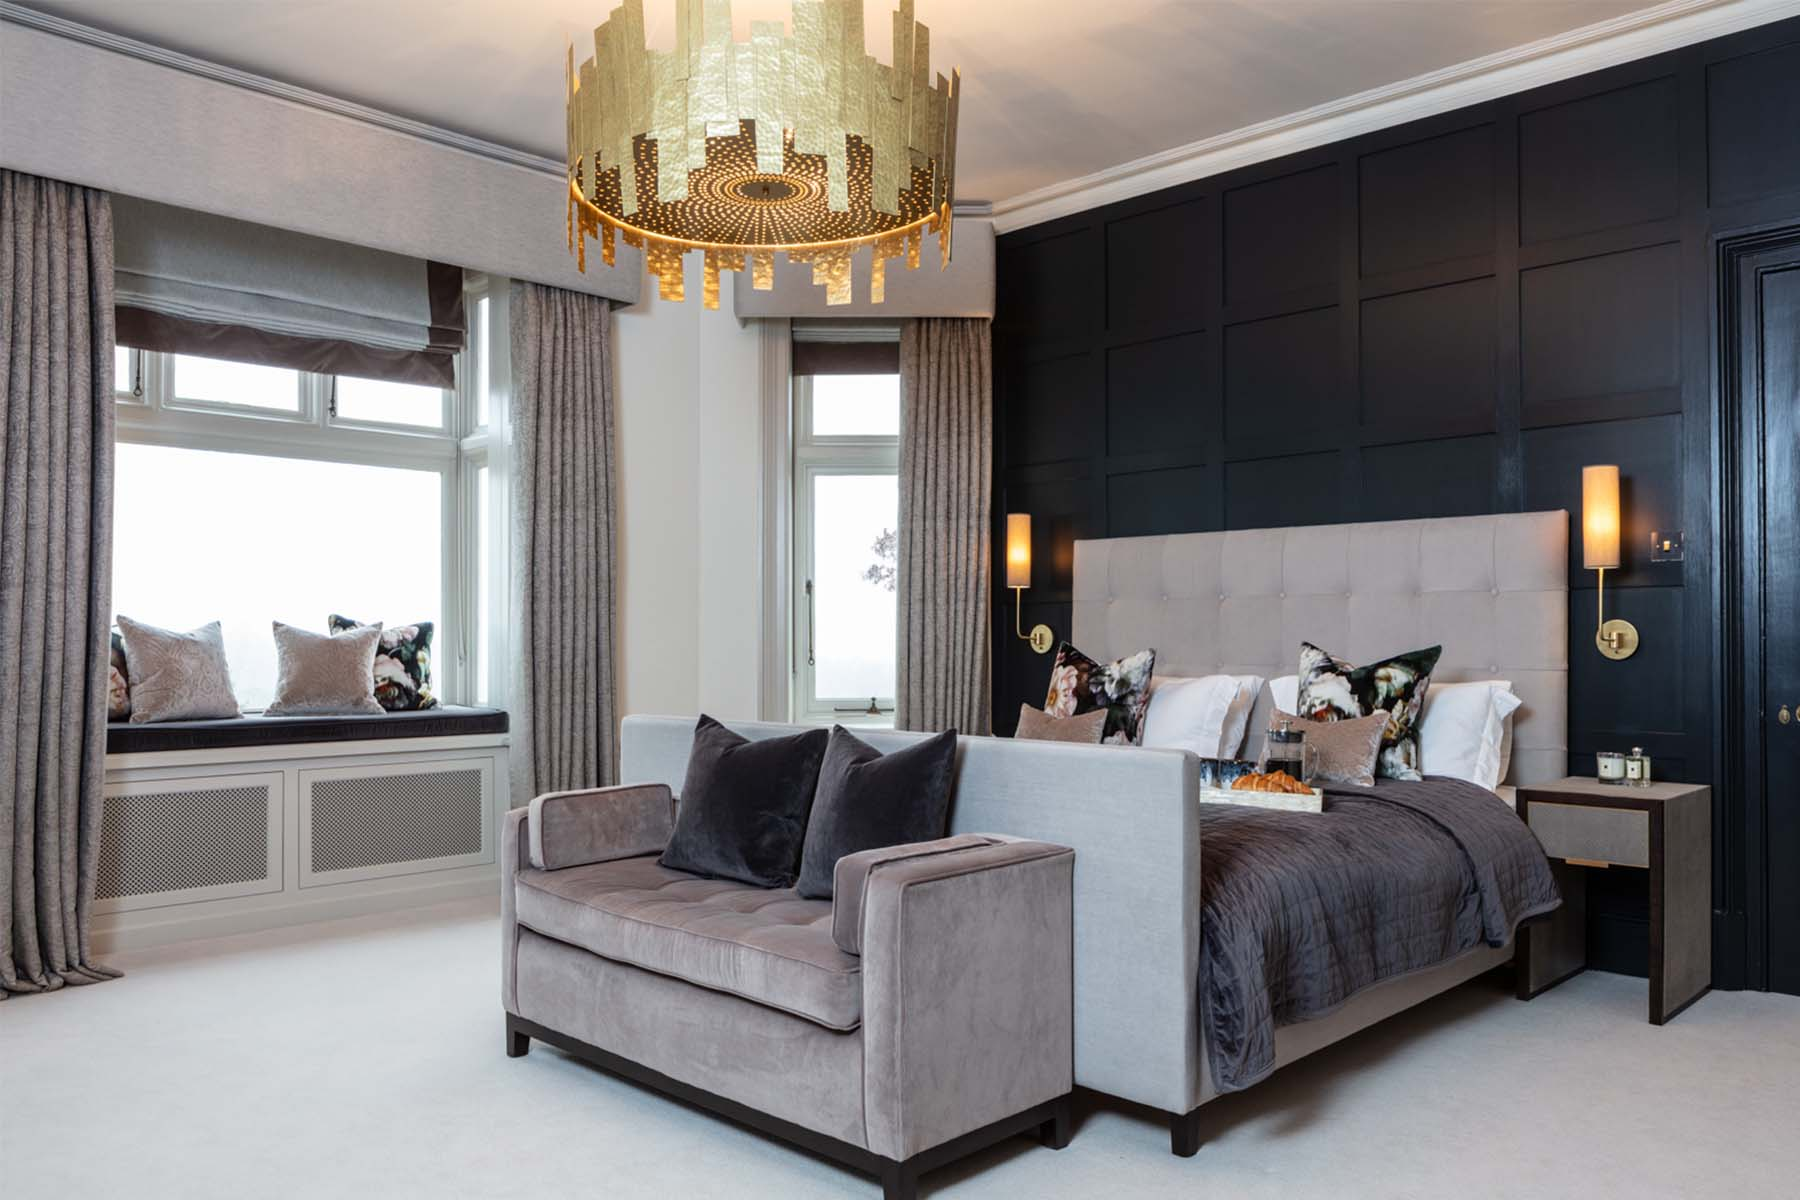 Country House Interior Design Case Study in West Sussex  Pfeiffer